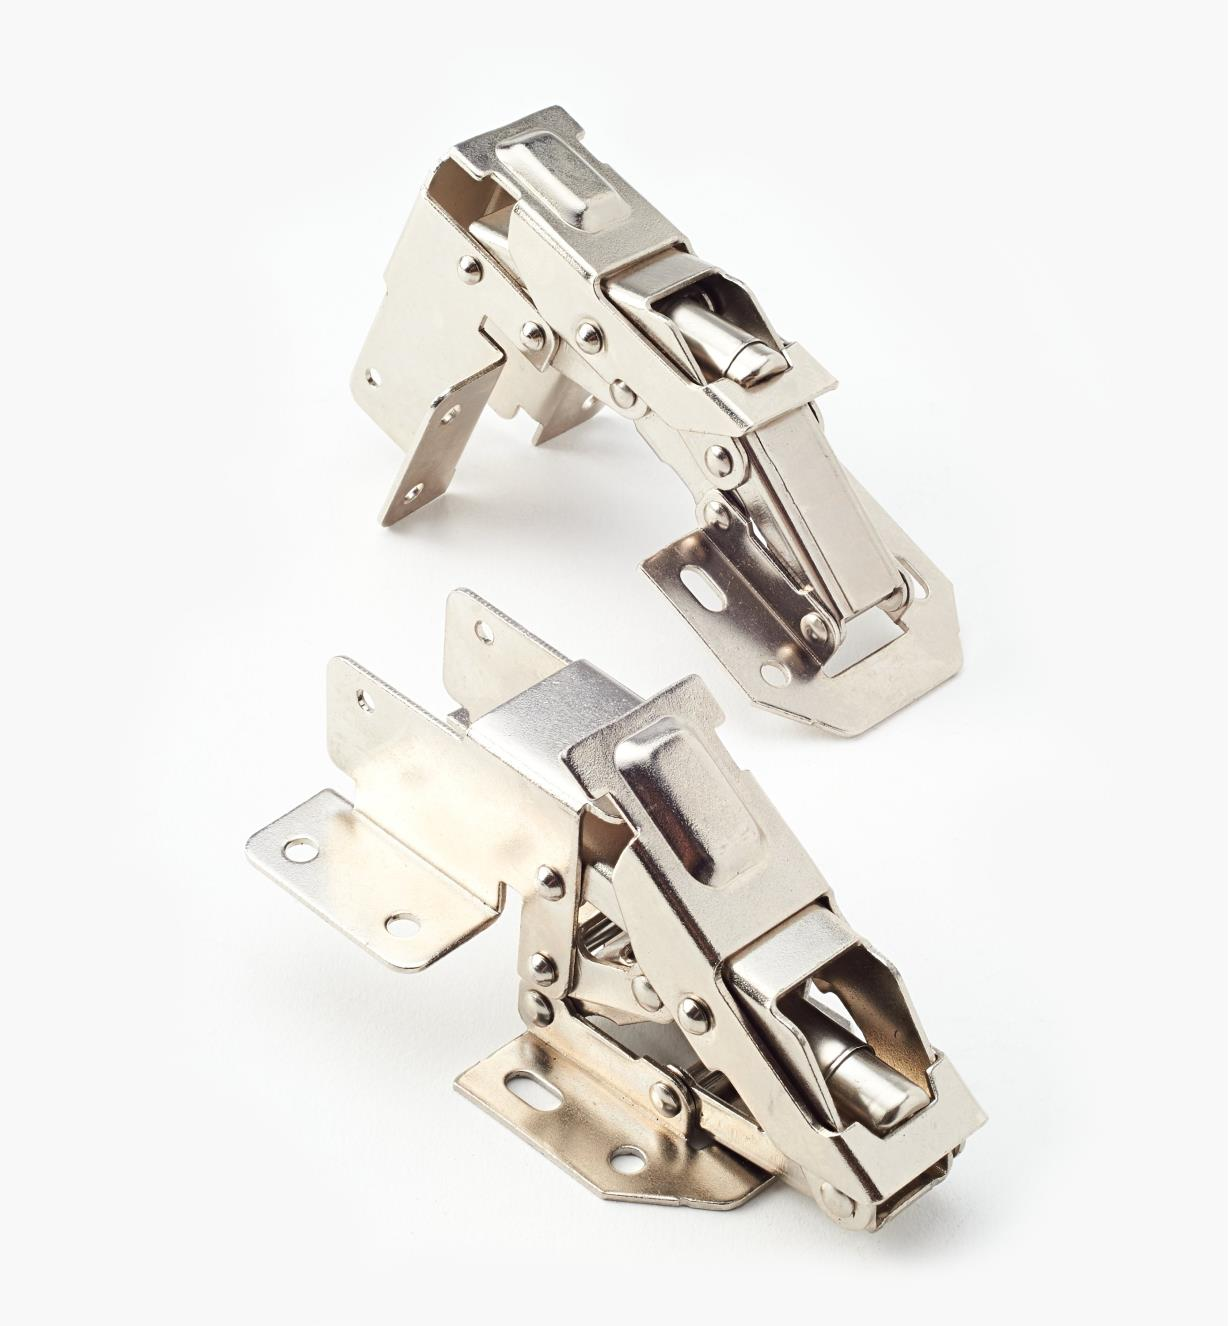 00S1901 - Hold-Up Hinges, pair